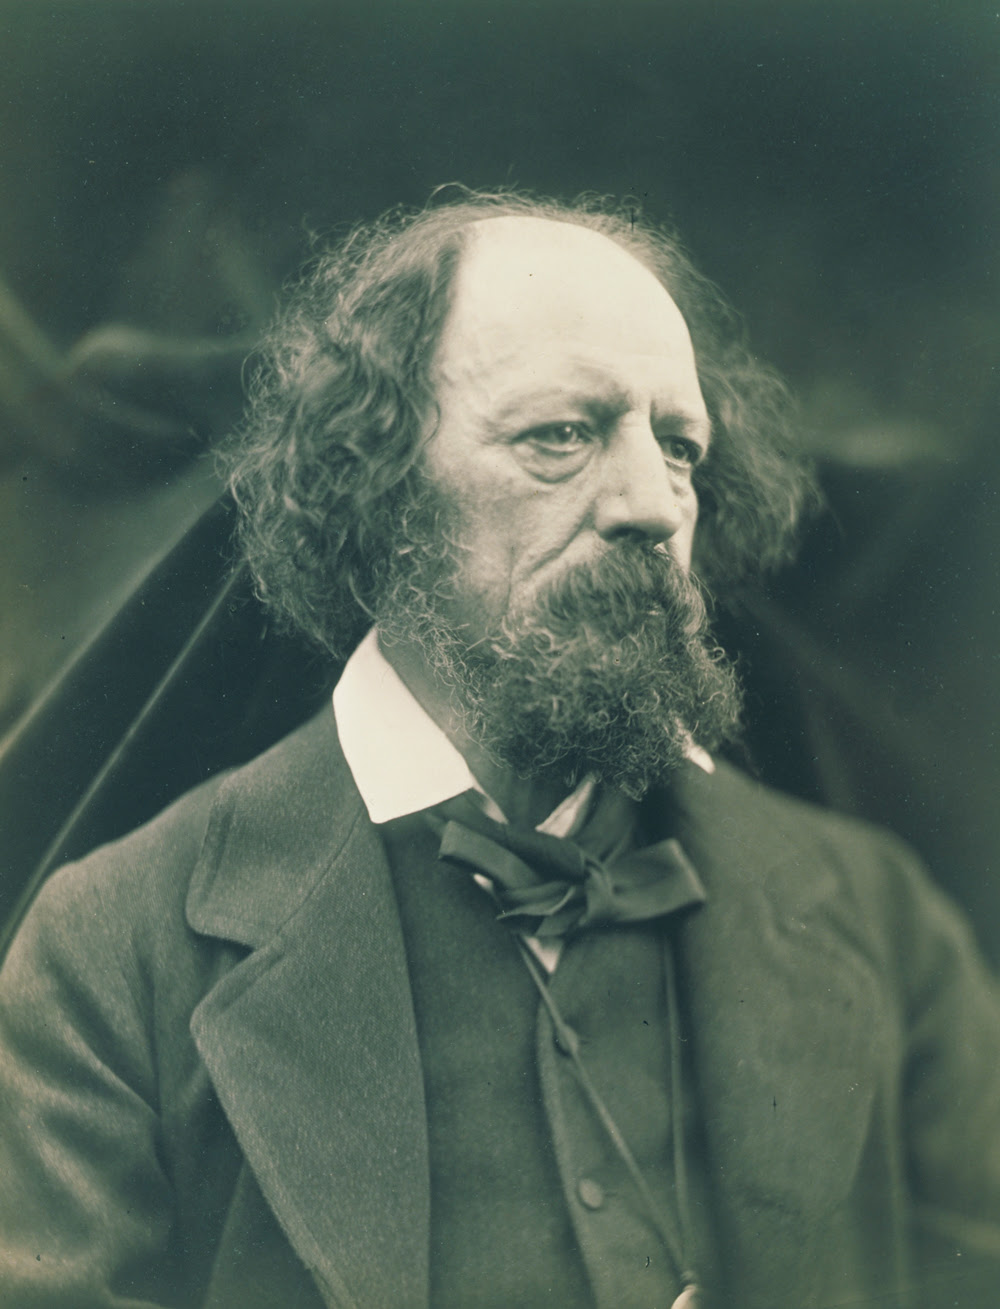 http://www.thehistoryblog.com/wp-content/uploads/2013/02/Alfred-Lord-Tennyson.jpg